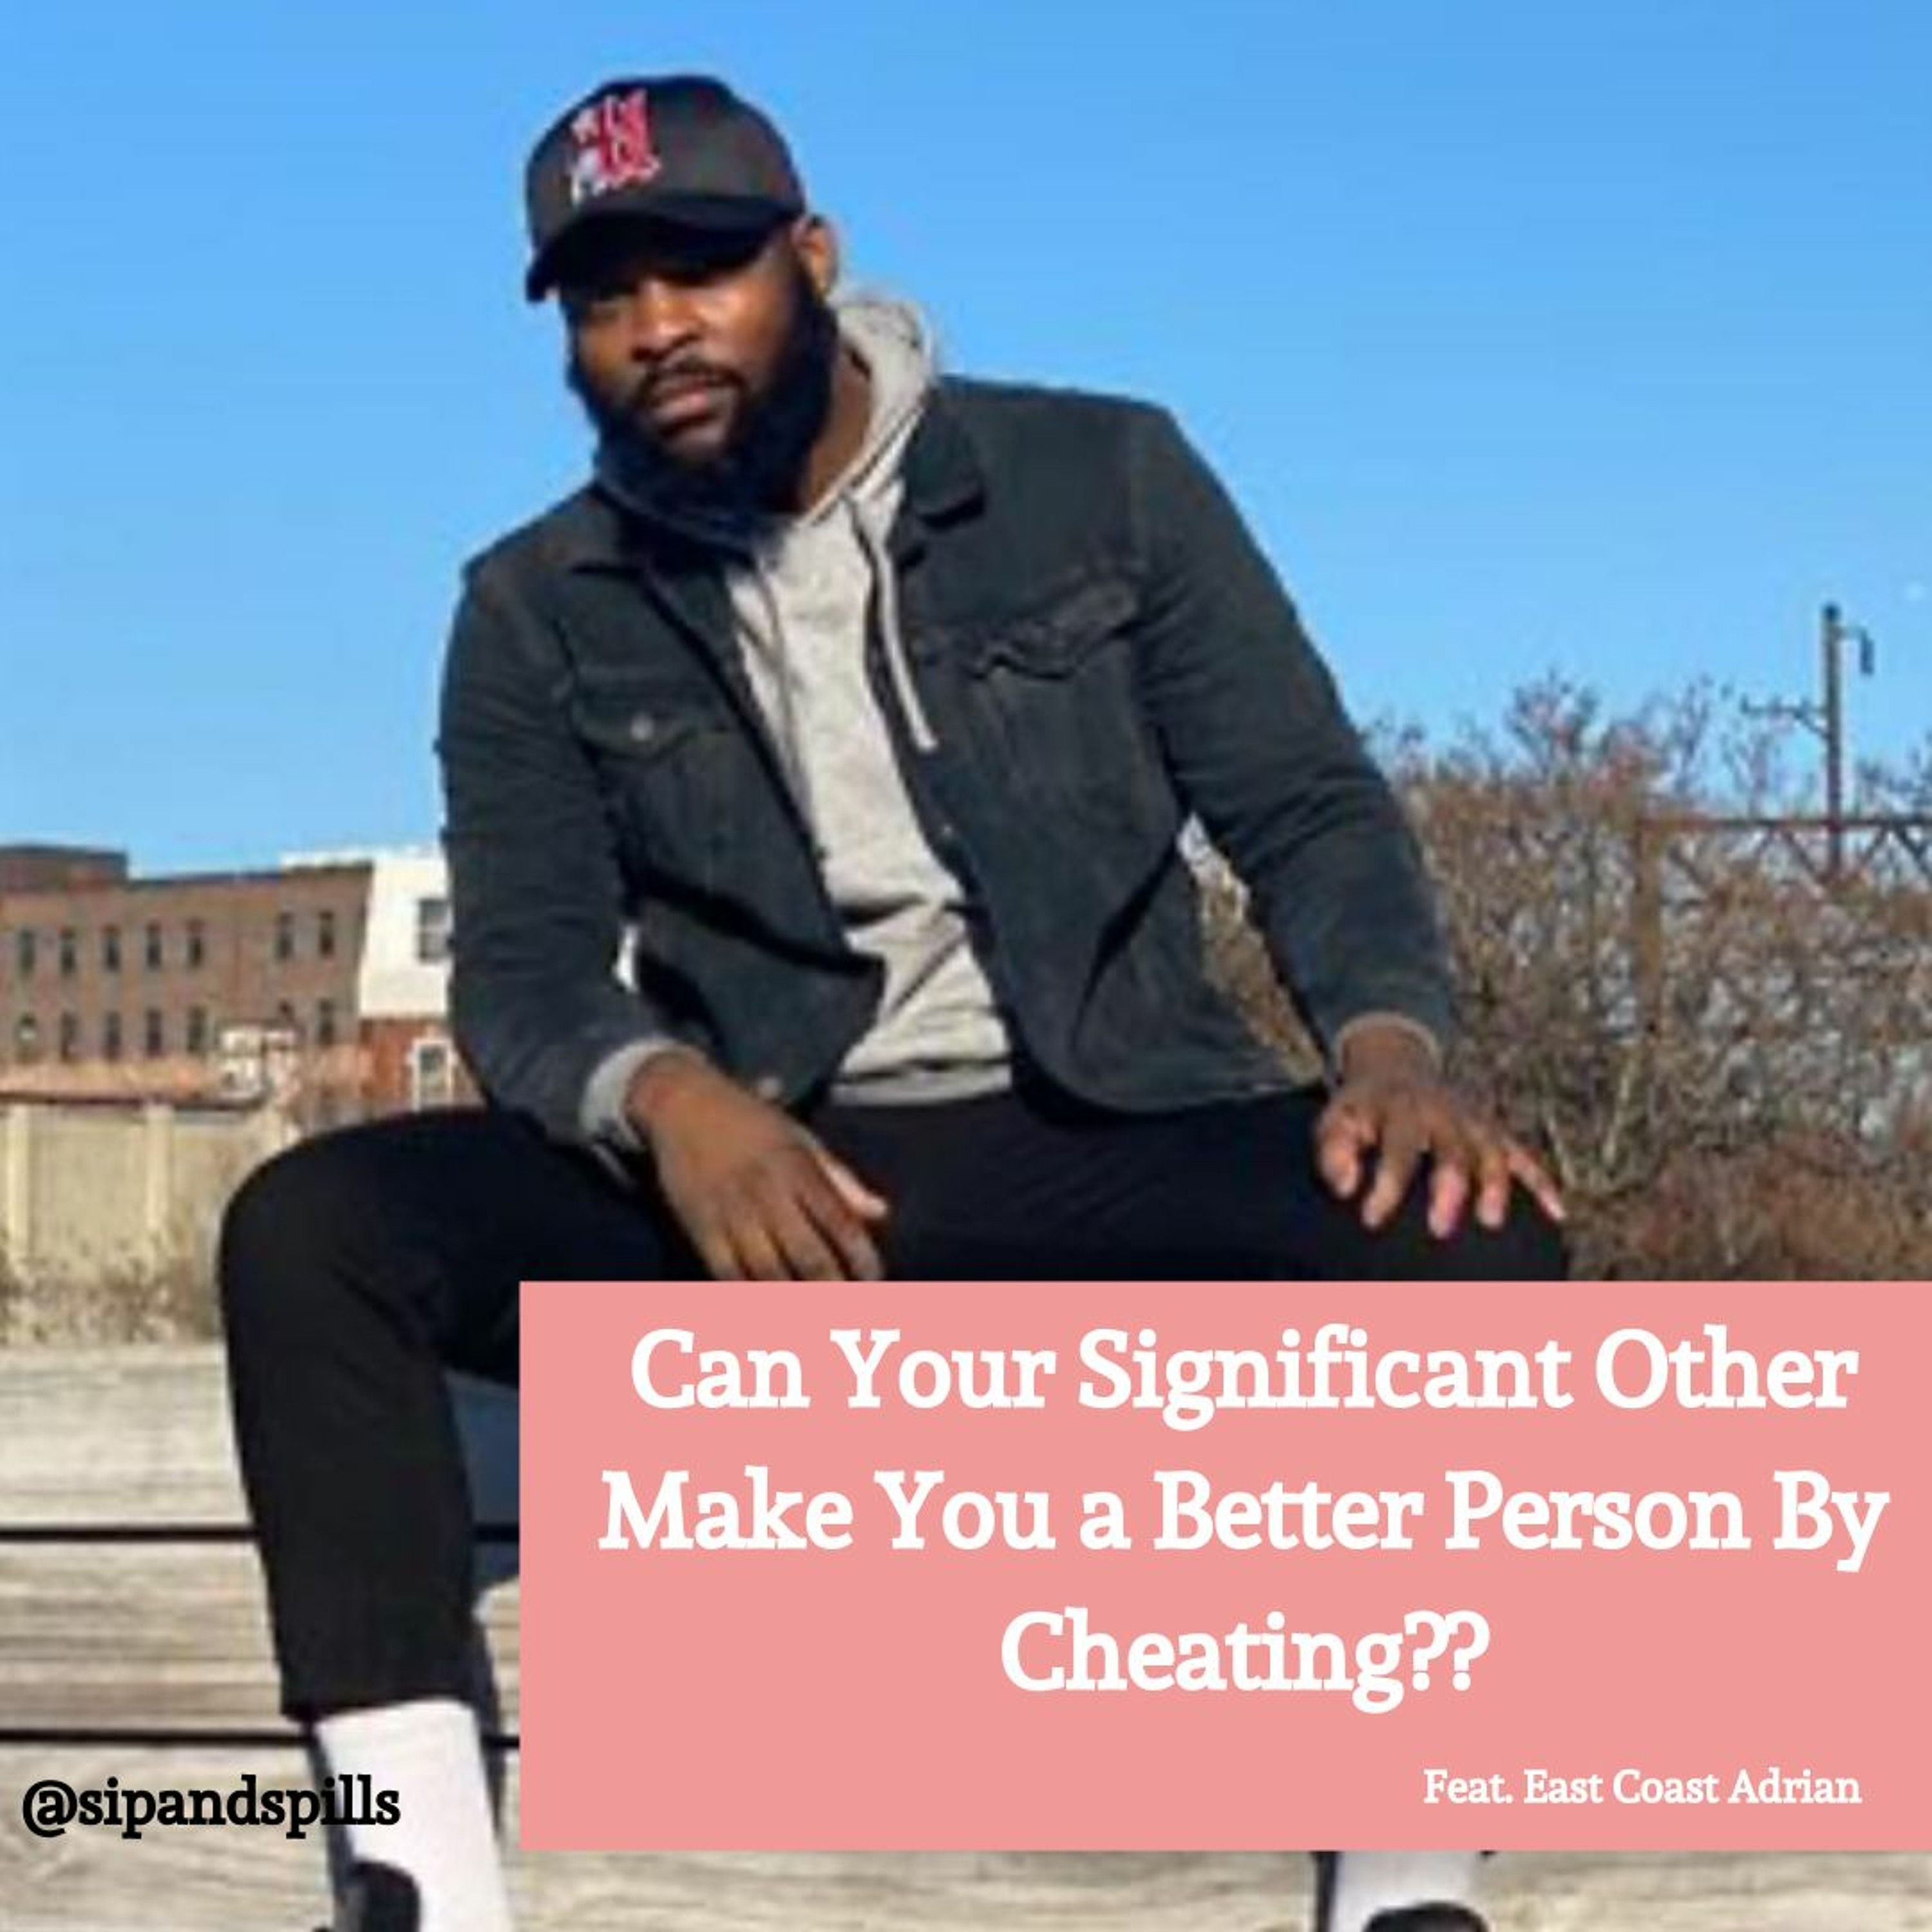 Can Your Sig. Other Make You a Better Person By Cheating???